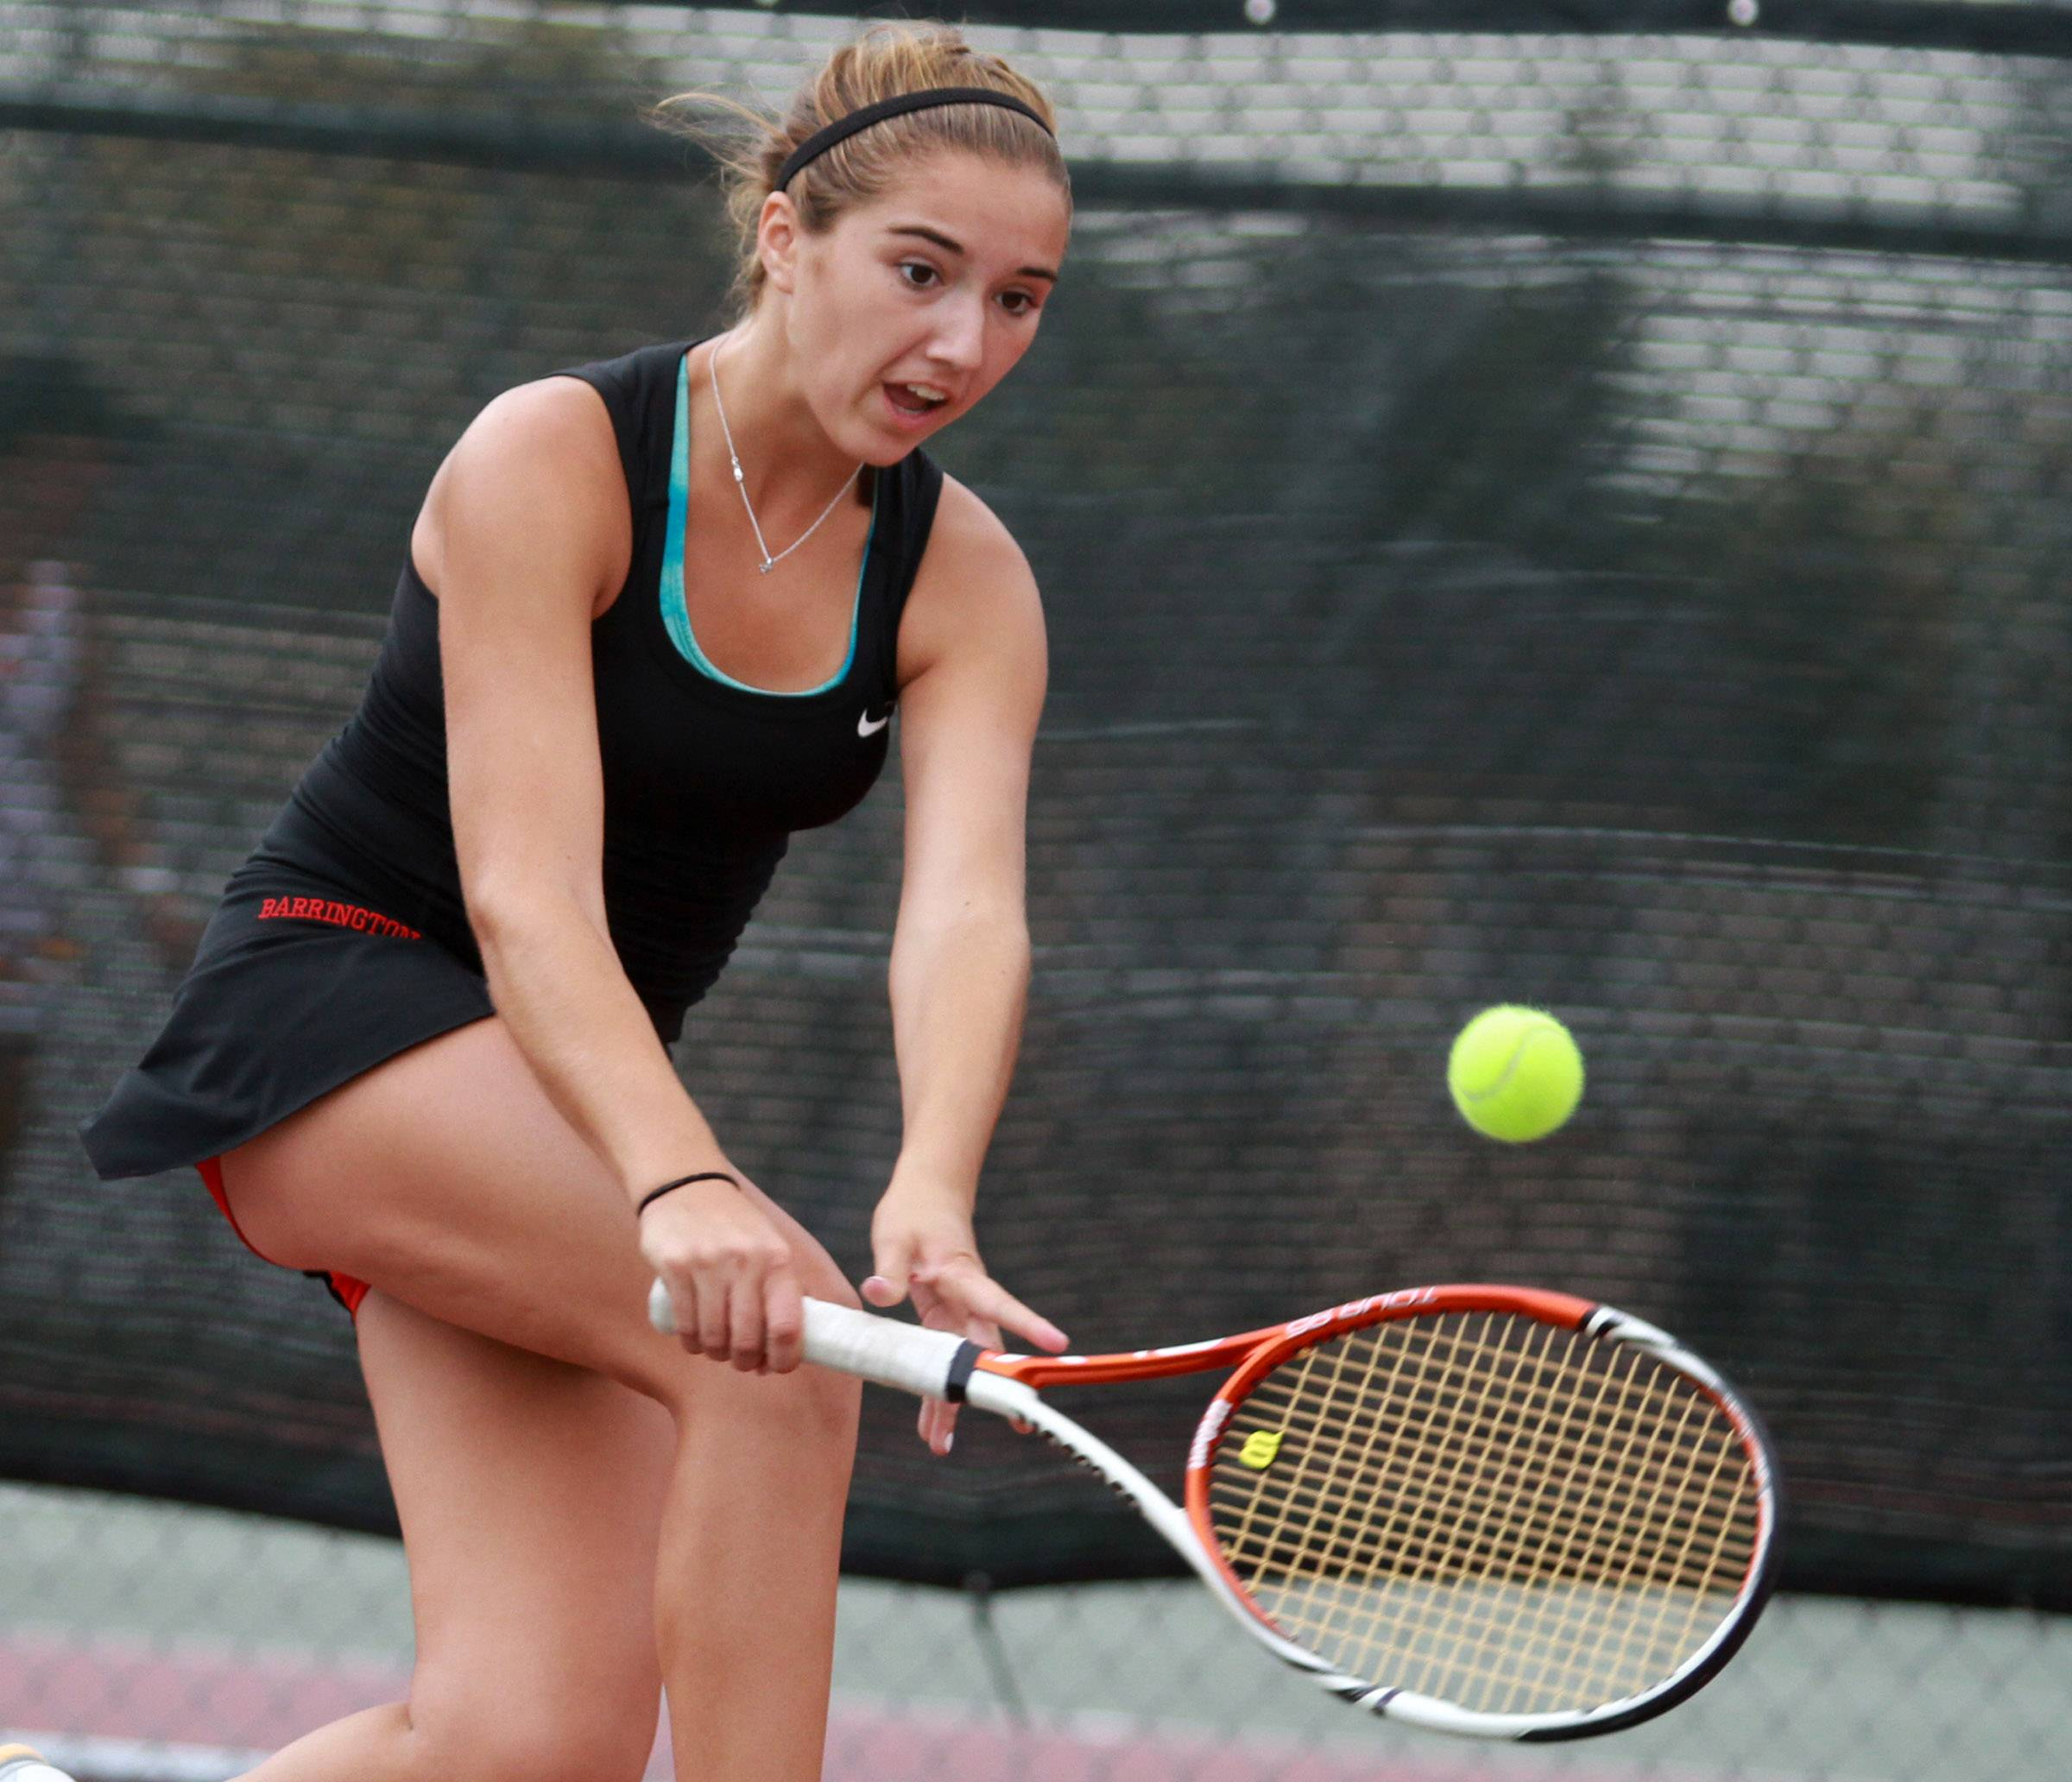 Barrington's Michelle Linden competes against Elk Grove Village's Jelena Vujanic at No. 1 singles in last season's MSL tournament at Rolling Meadows. Both players return for their teams this fall.